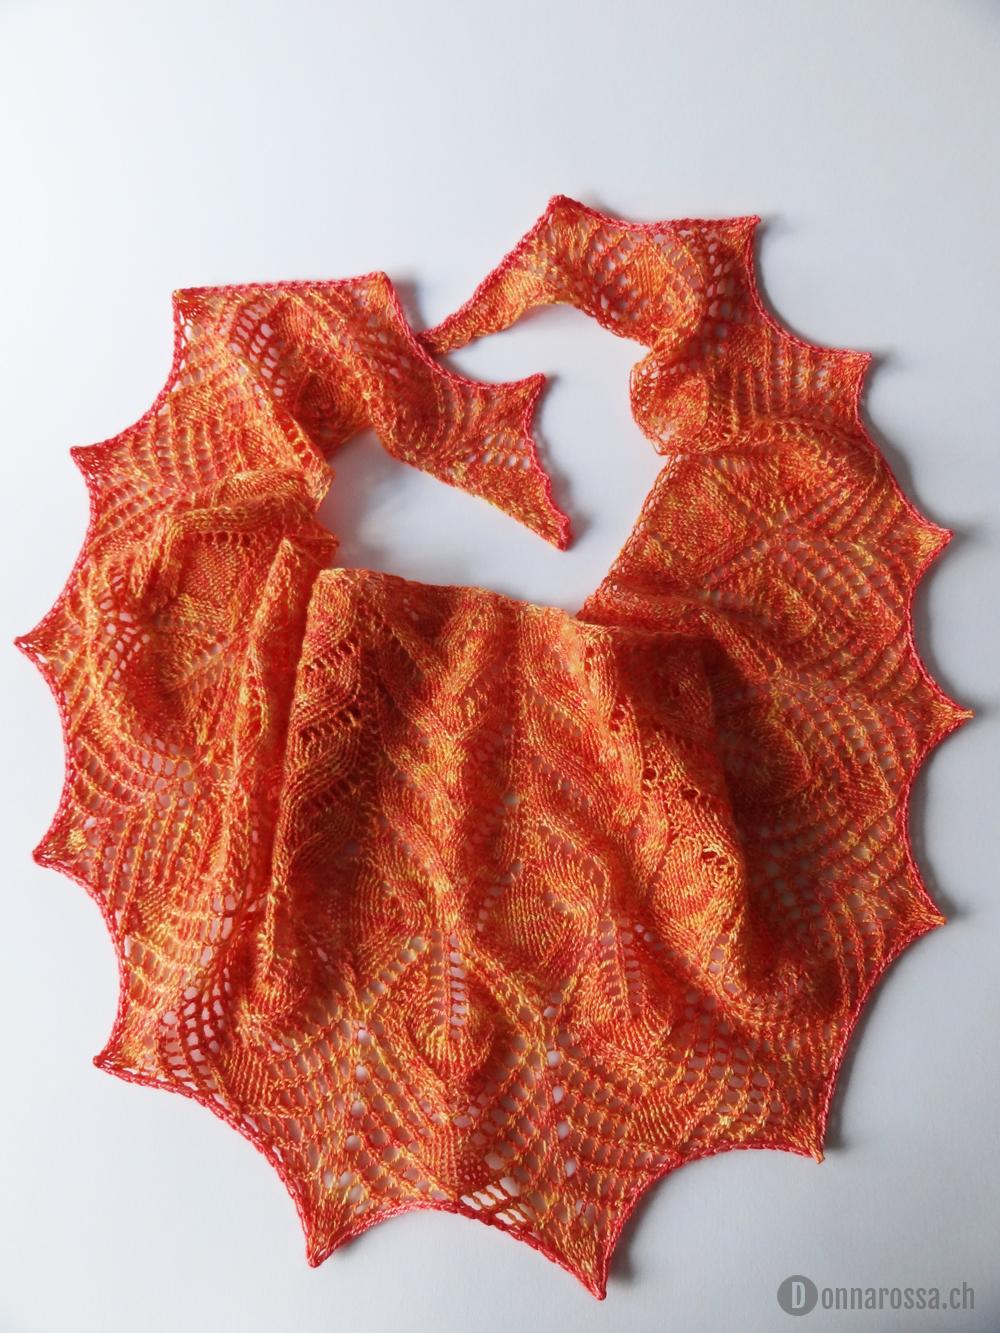 Fine vine shawl - total